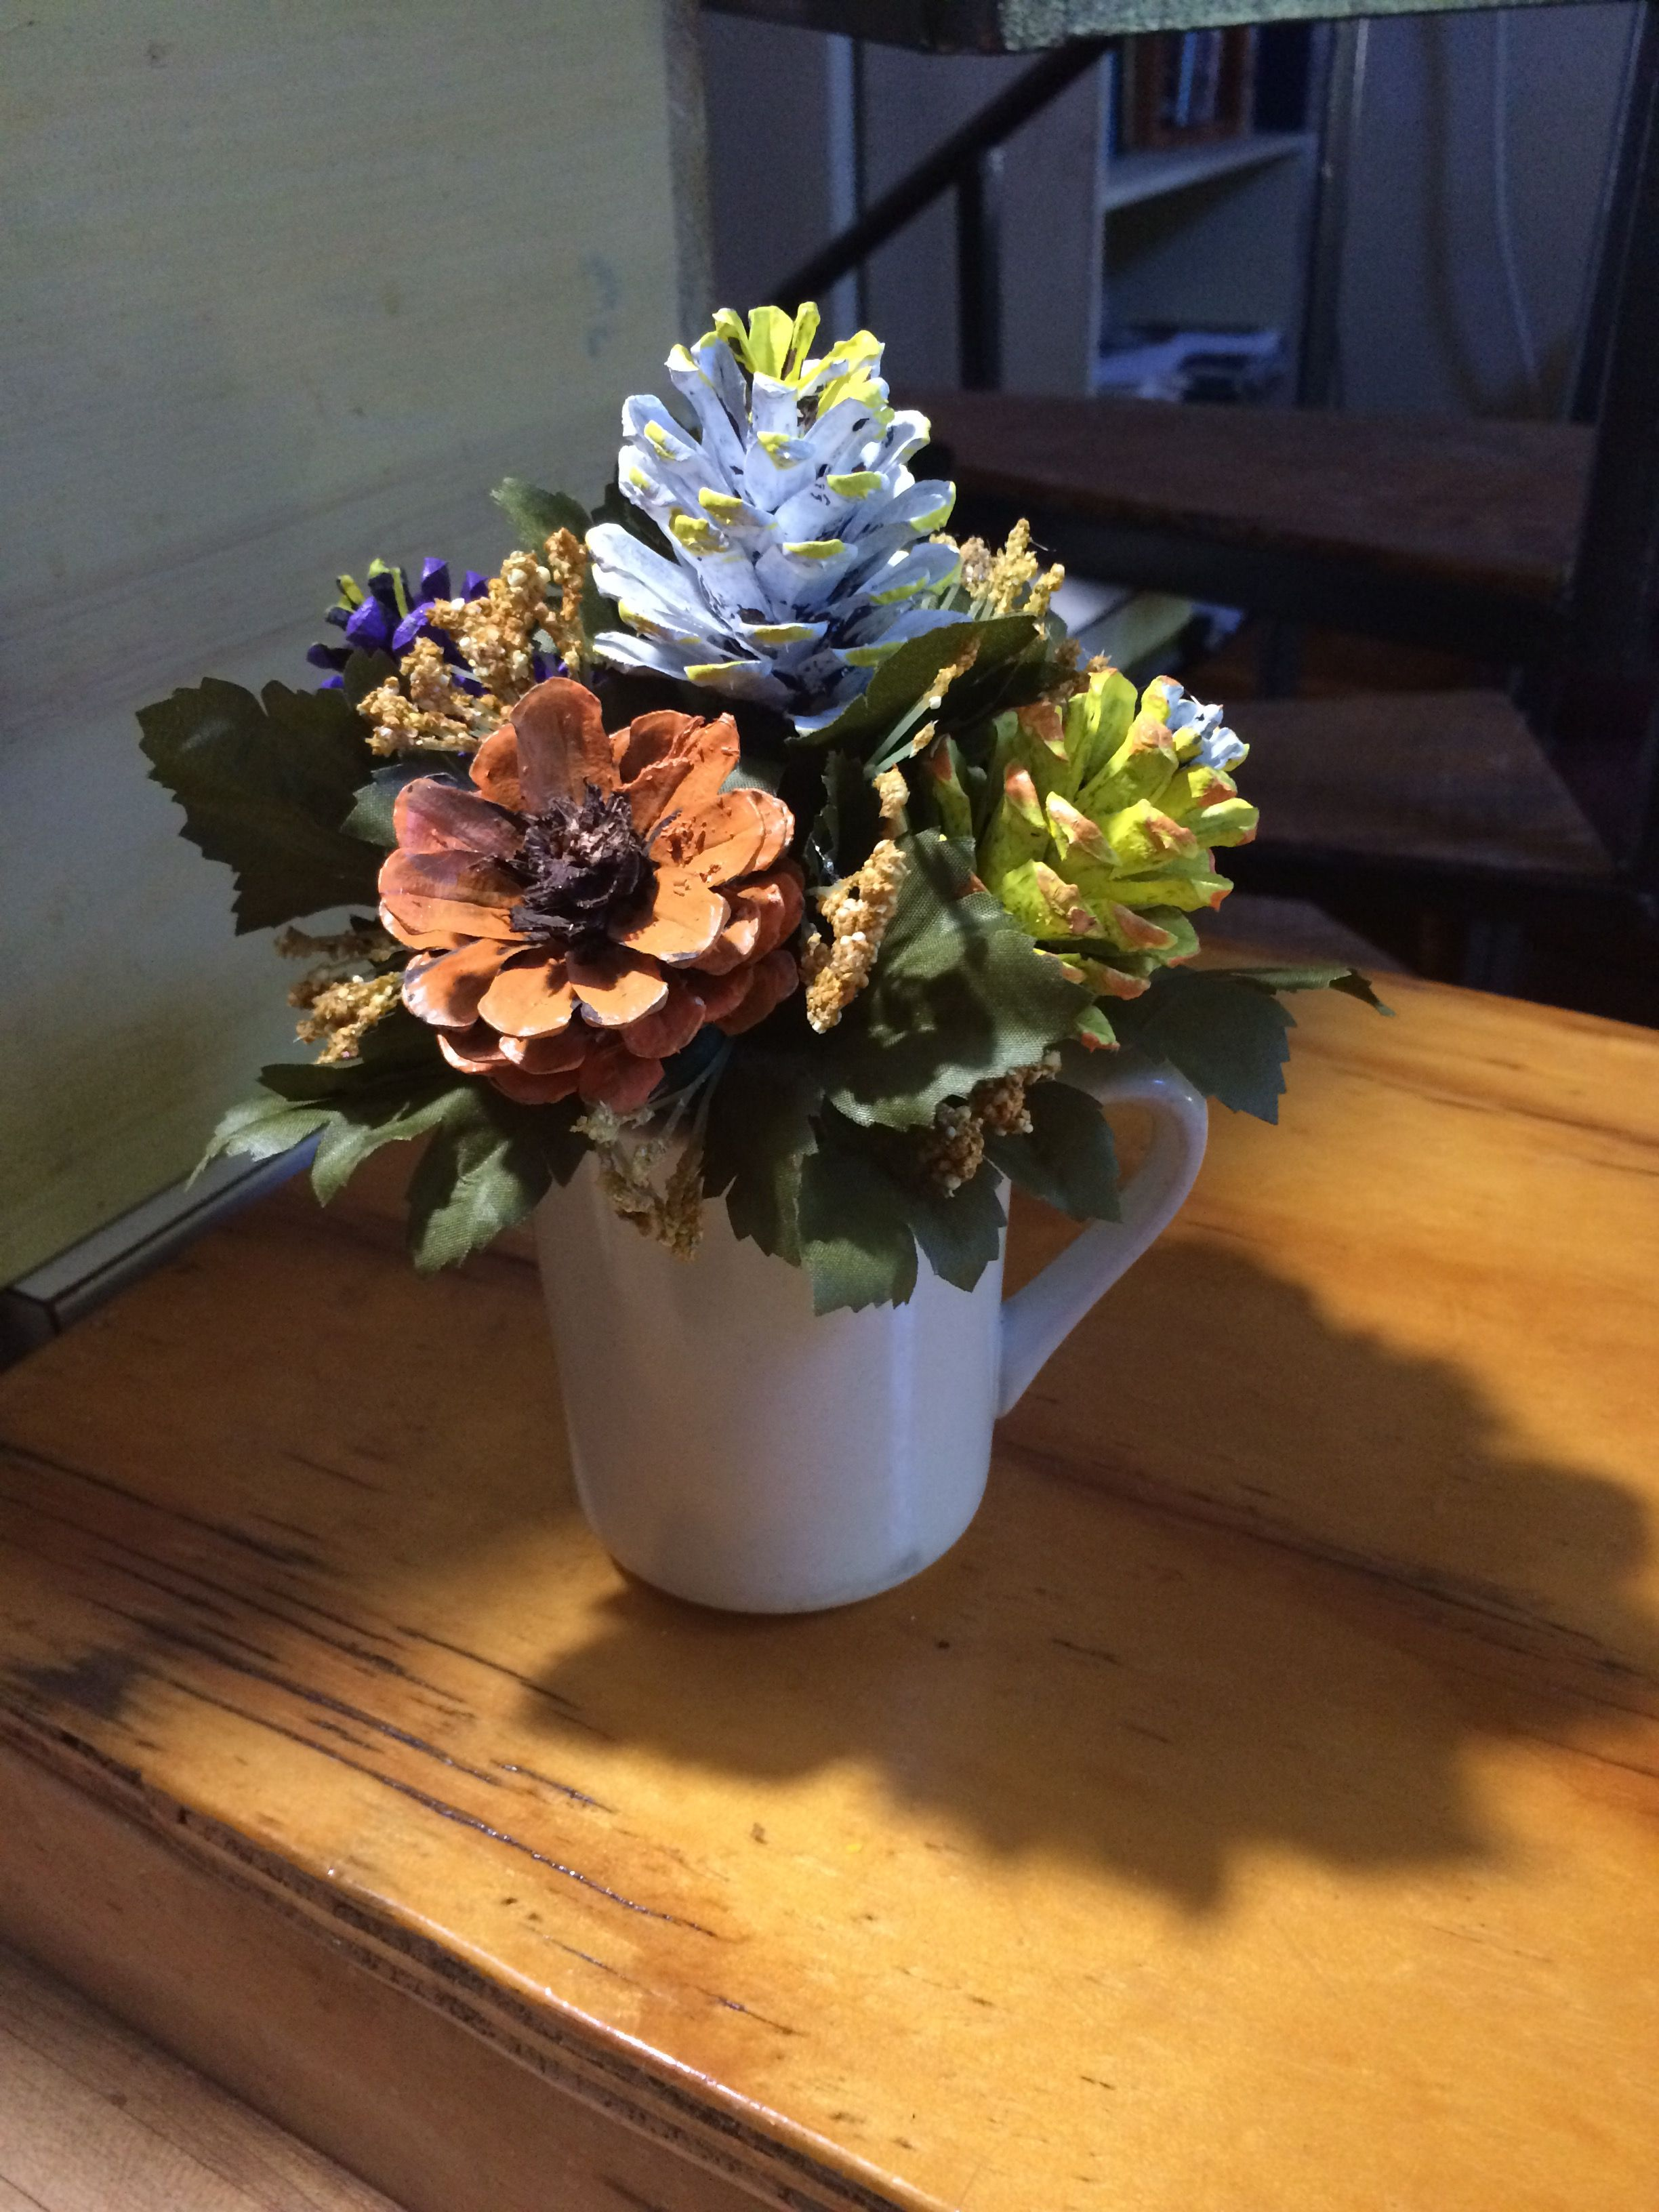 Pinecone Flower Arrangement By Cat Pine Cone Crafts Pine Cone Art Painted Pinecones